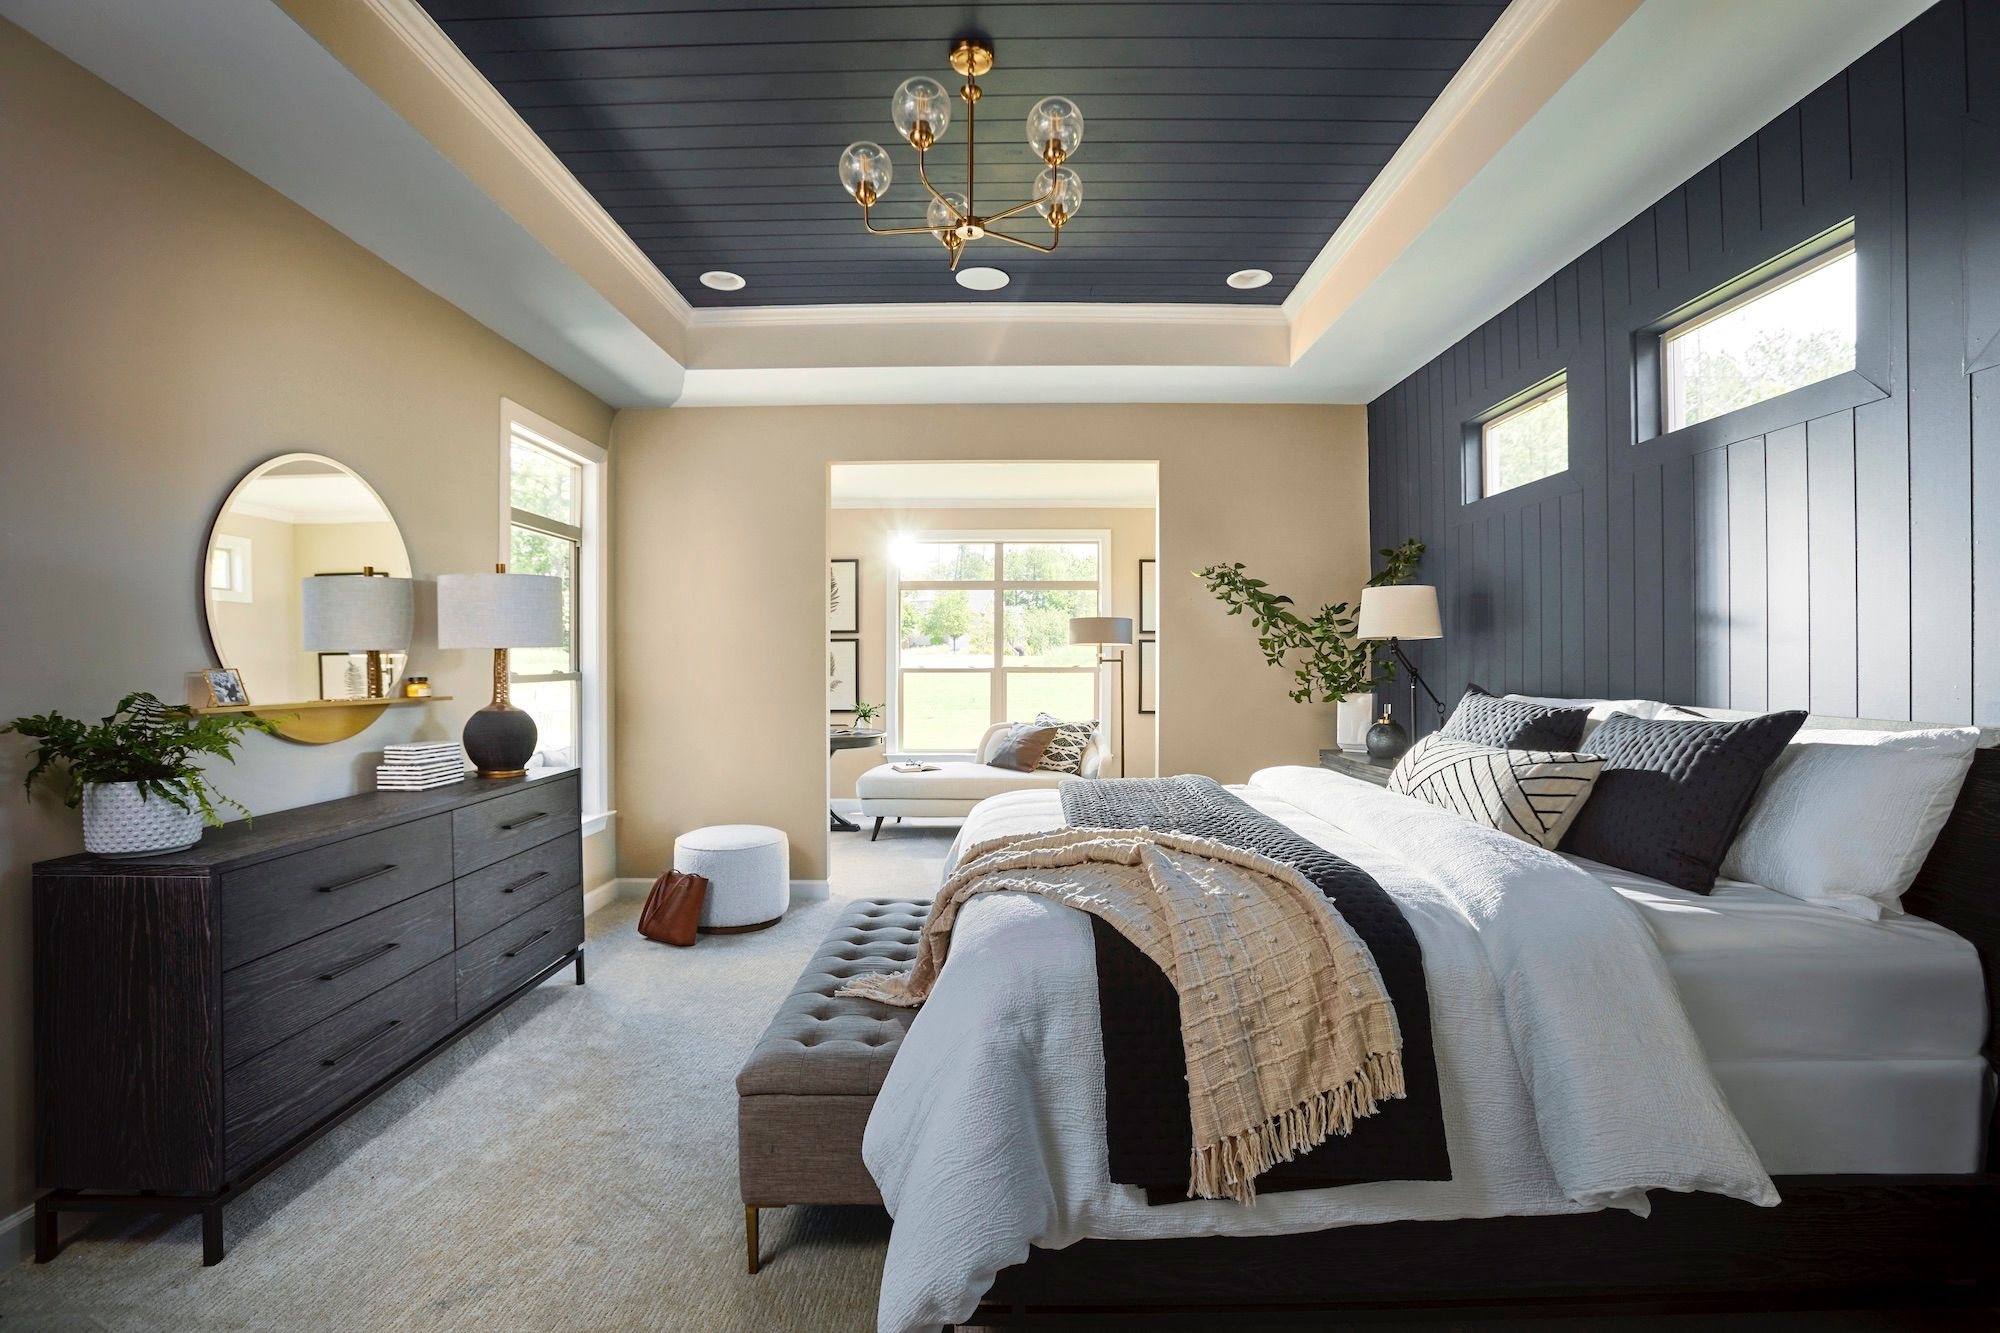 Bedroom featured in the Verona By Pinnacle Communities in Des Moines, IA